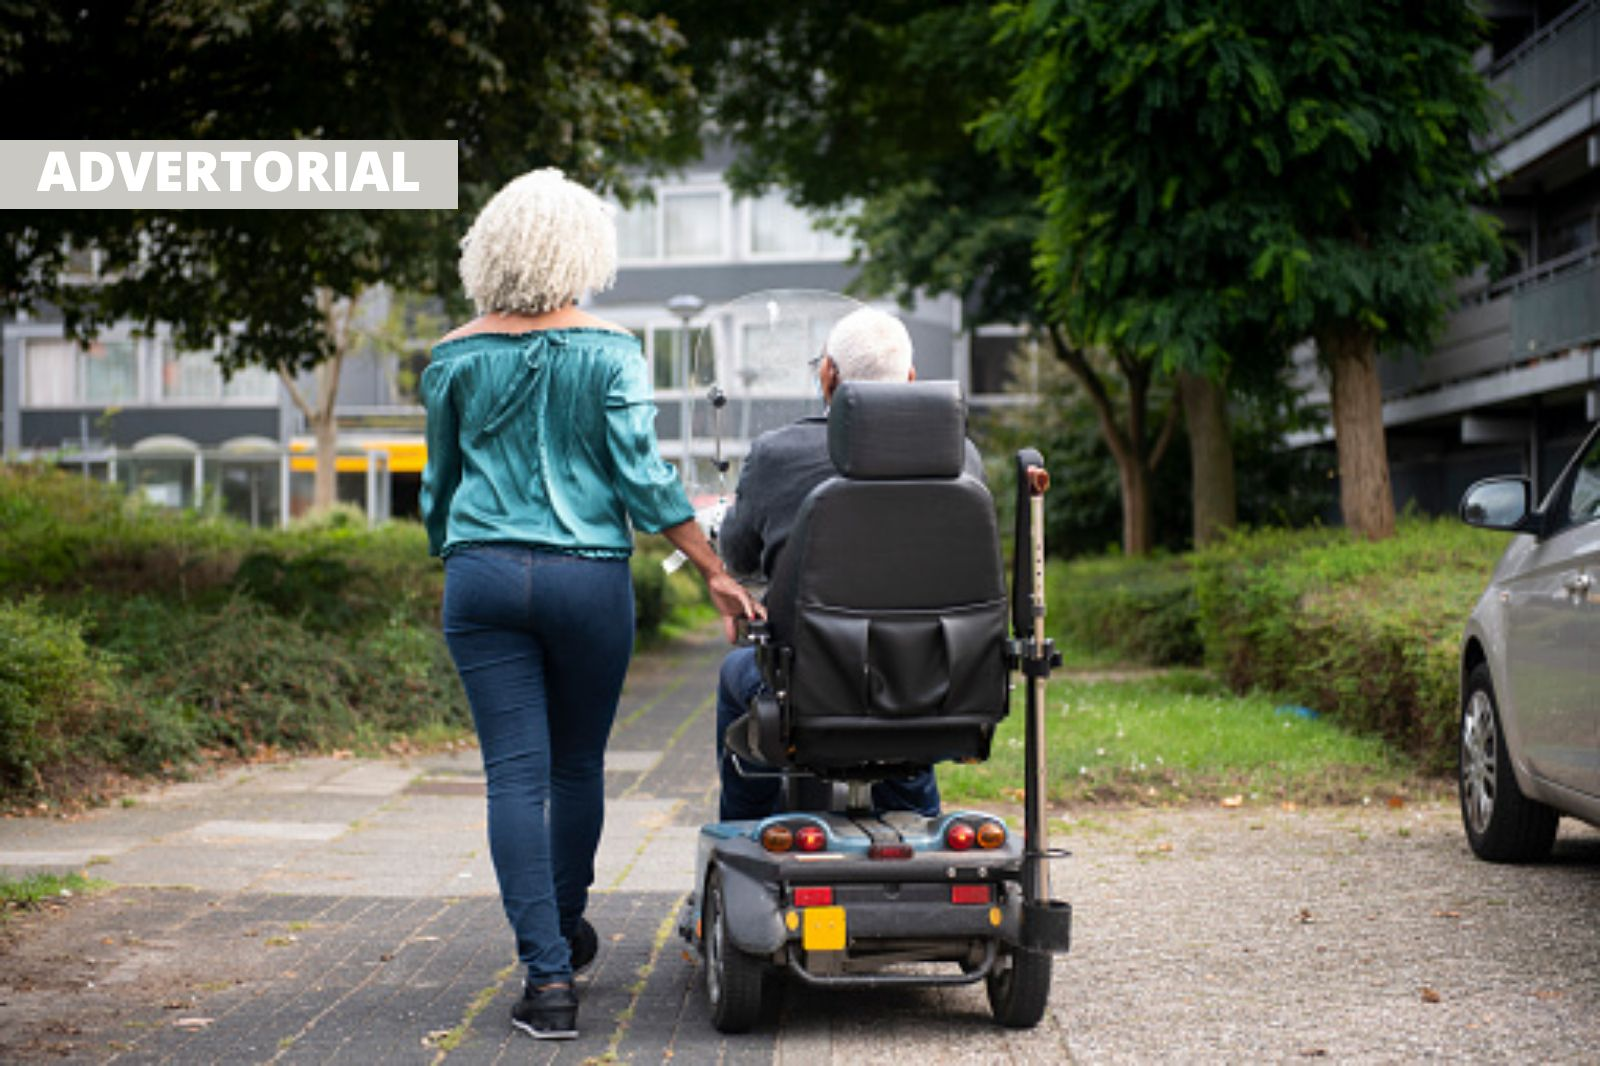 Making life easier for older and disabled people at The Lifestyle Centre in Nottingham